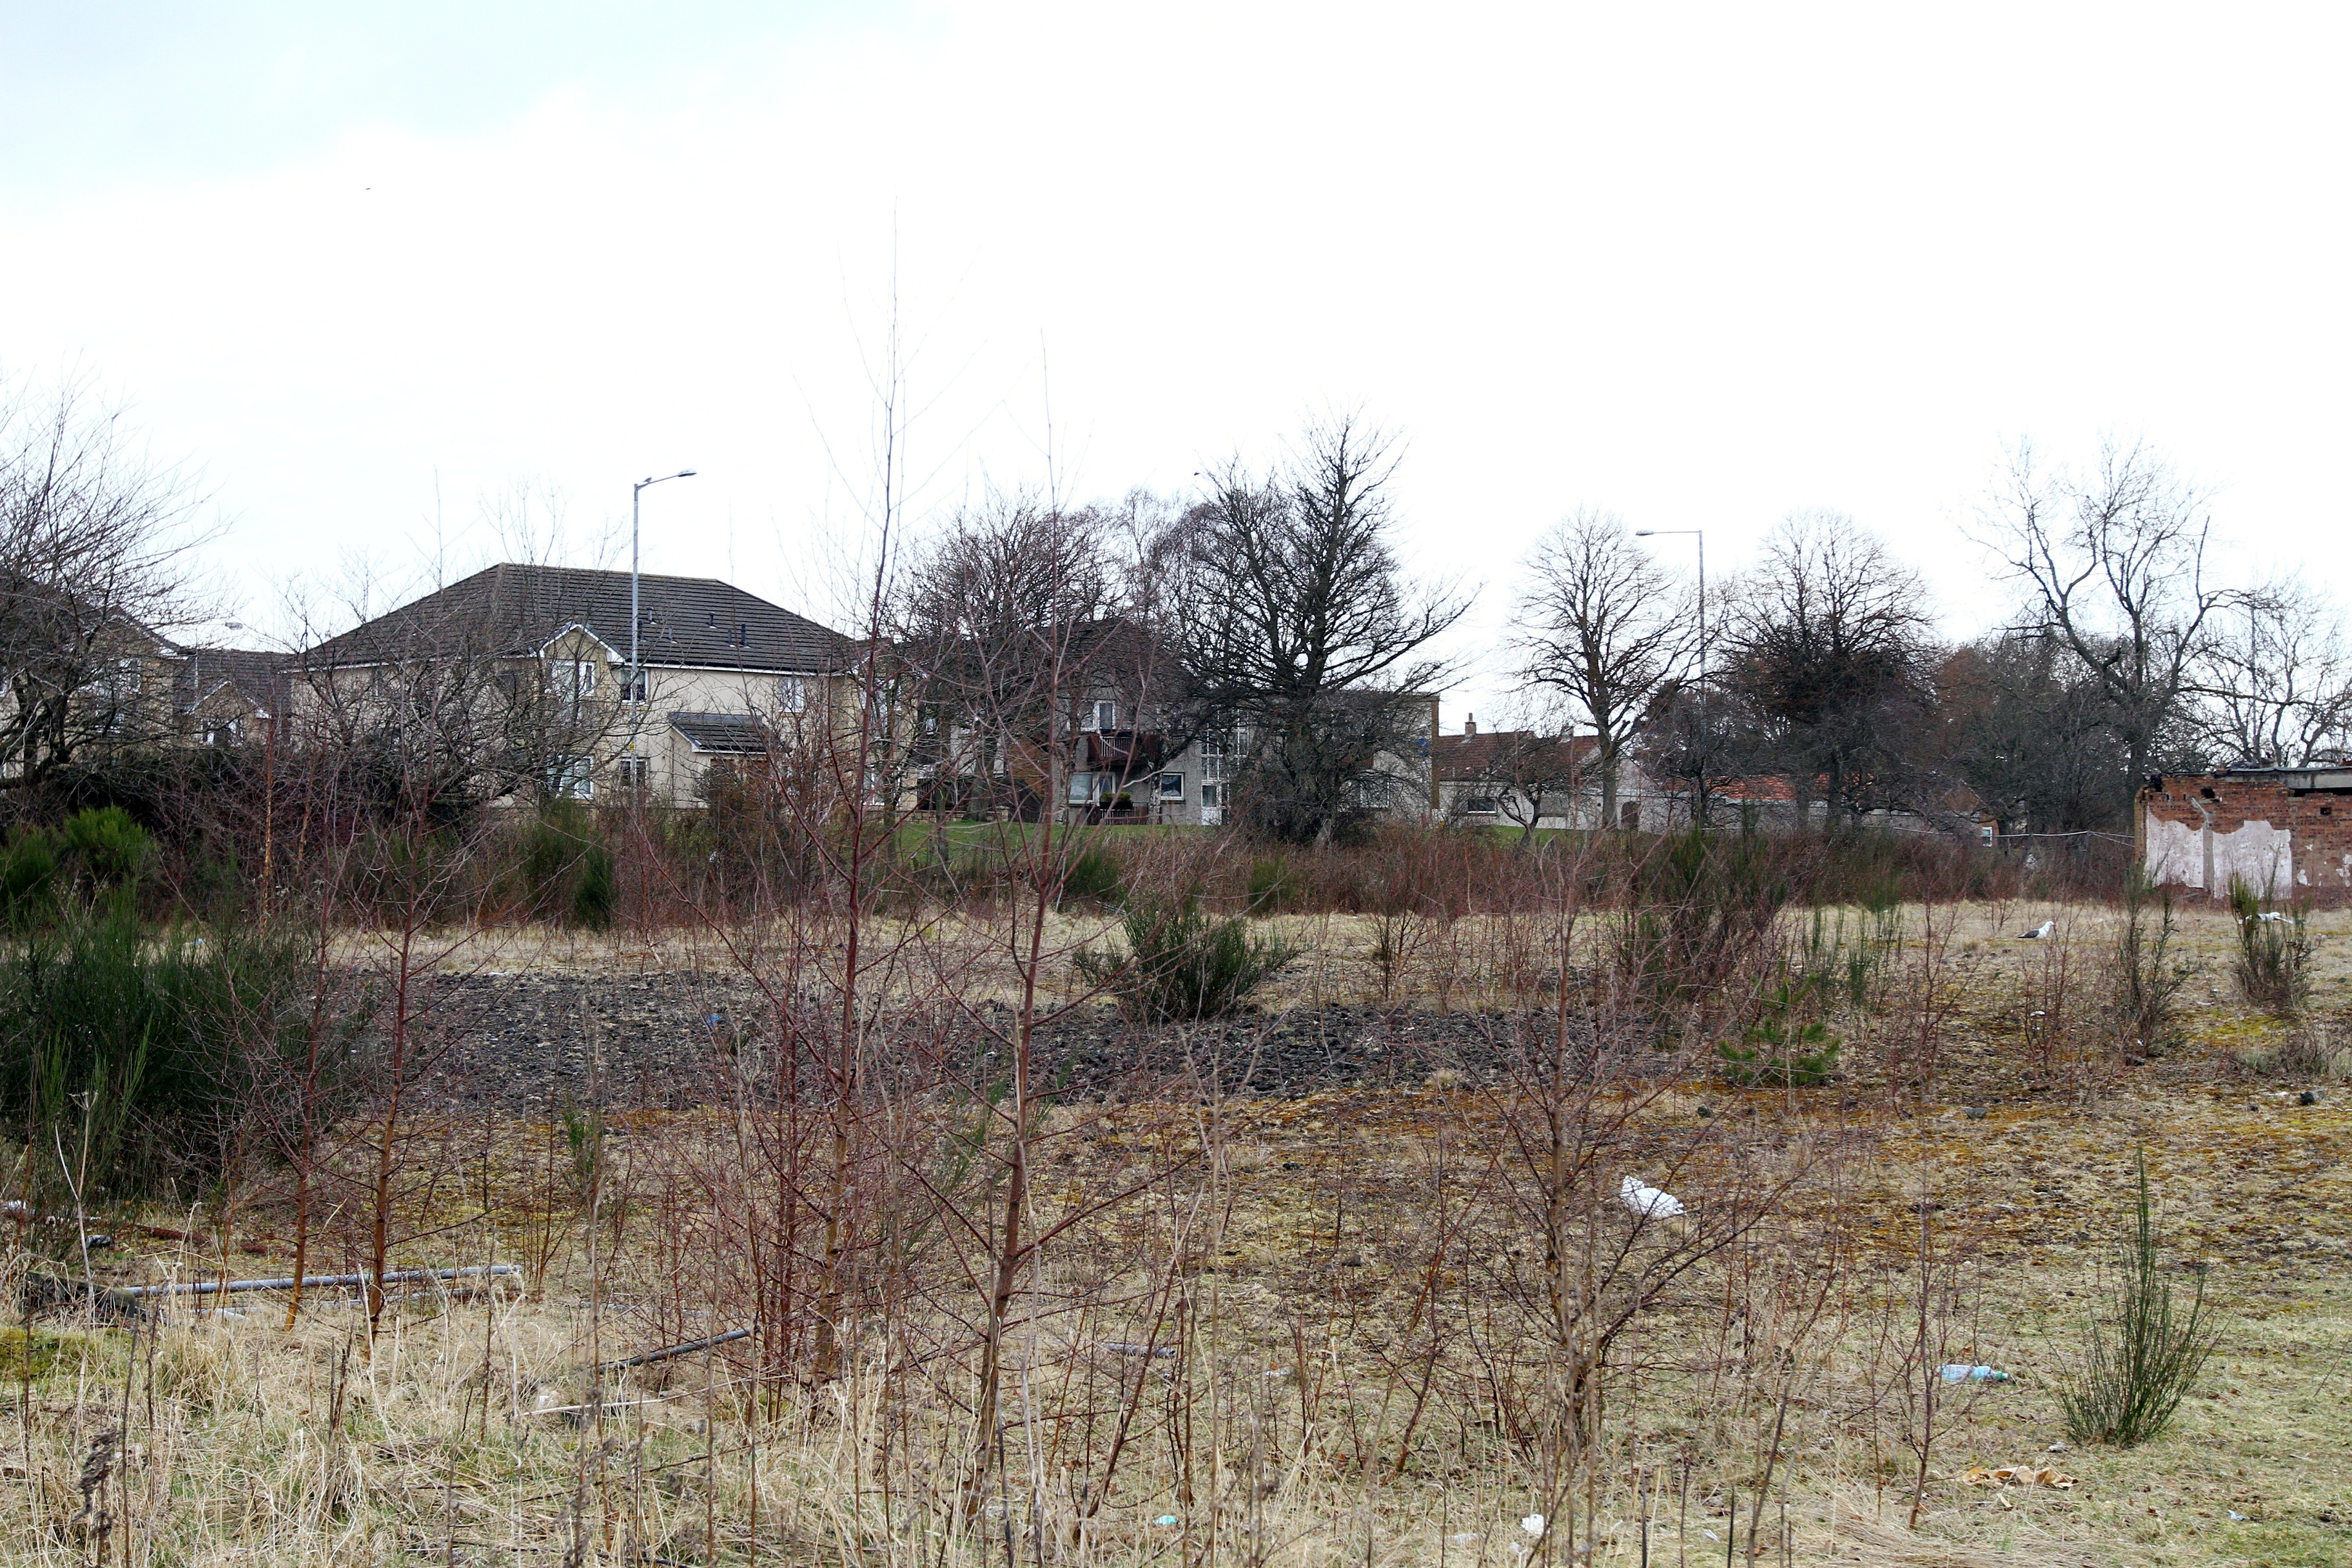 The vacant spot earmarked for housing by a developer, but protected as employment land by the local authority.